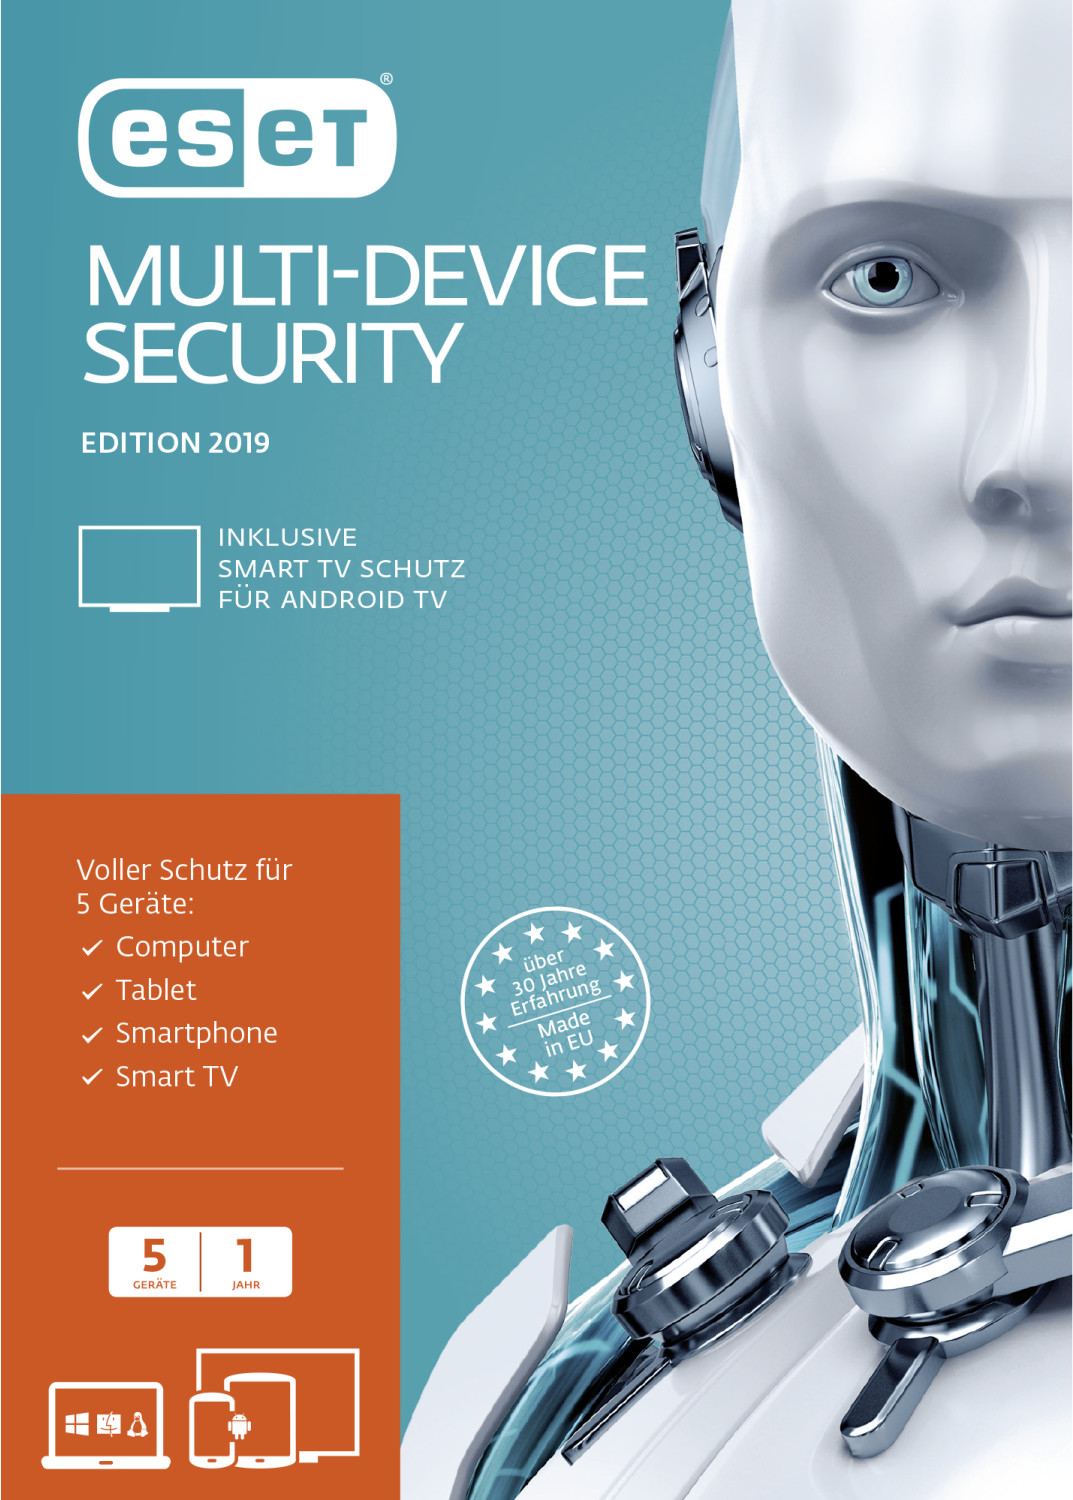 Image of ESET Multi-Device Security 2019